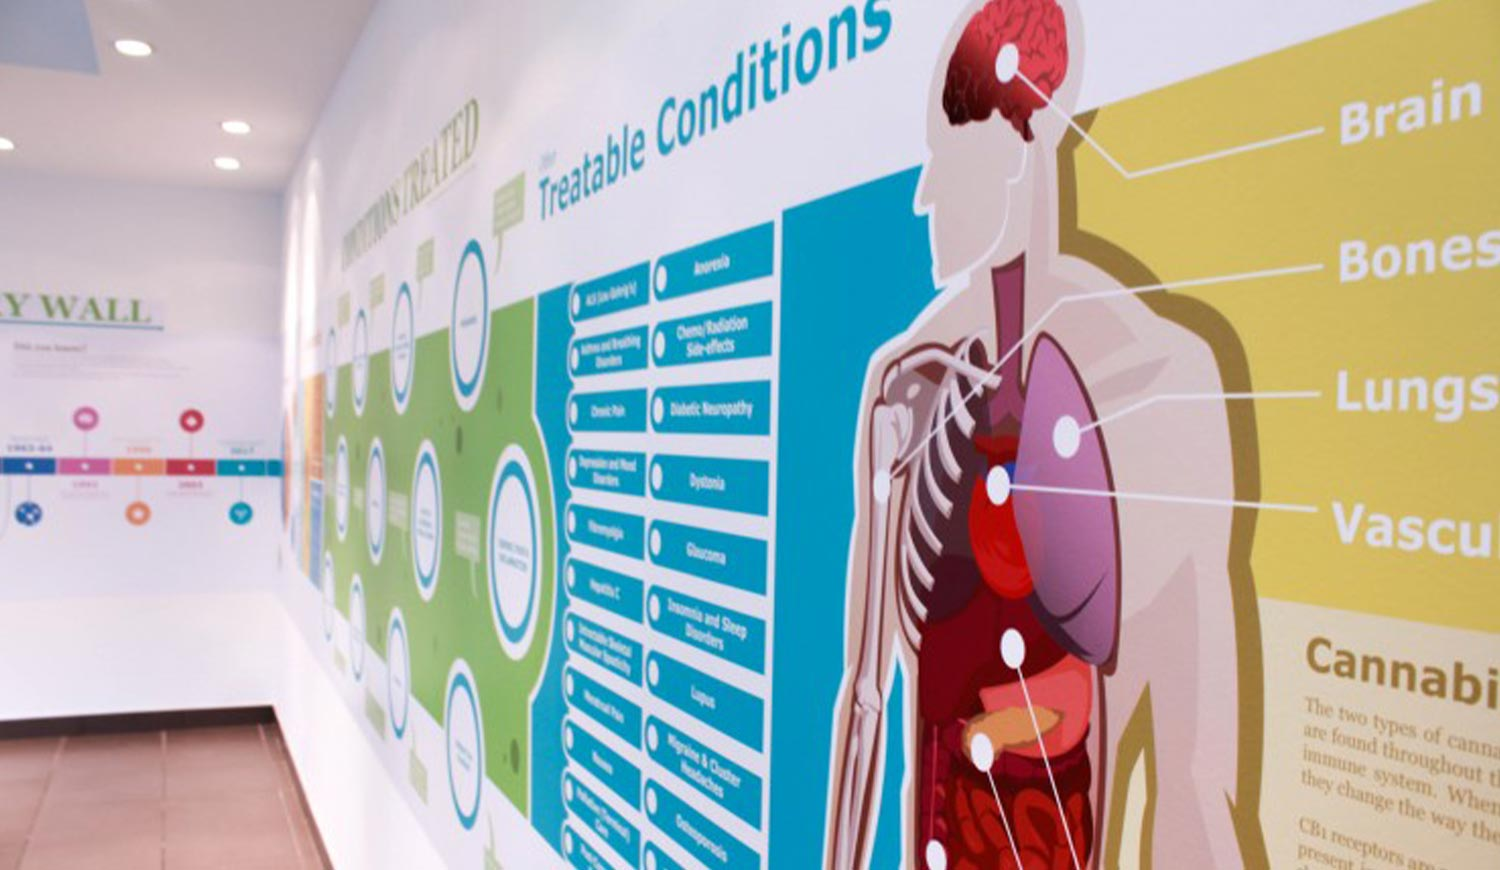 Hospital Wall Prints - Wall graphics for Medical centres